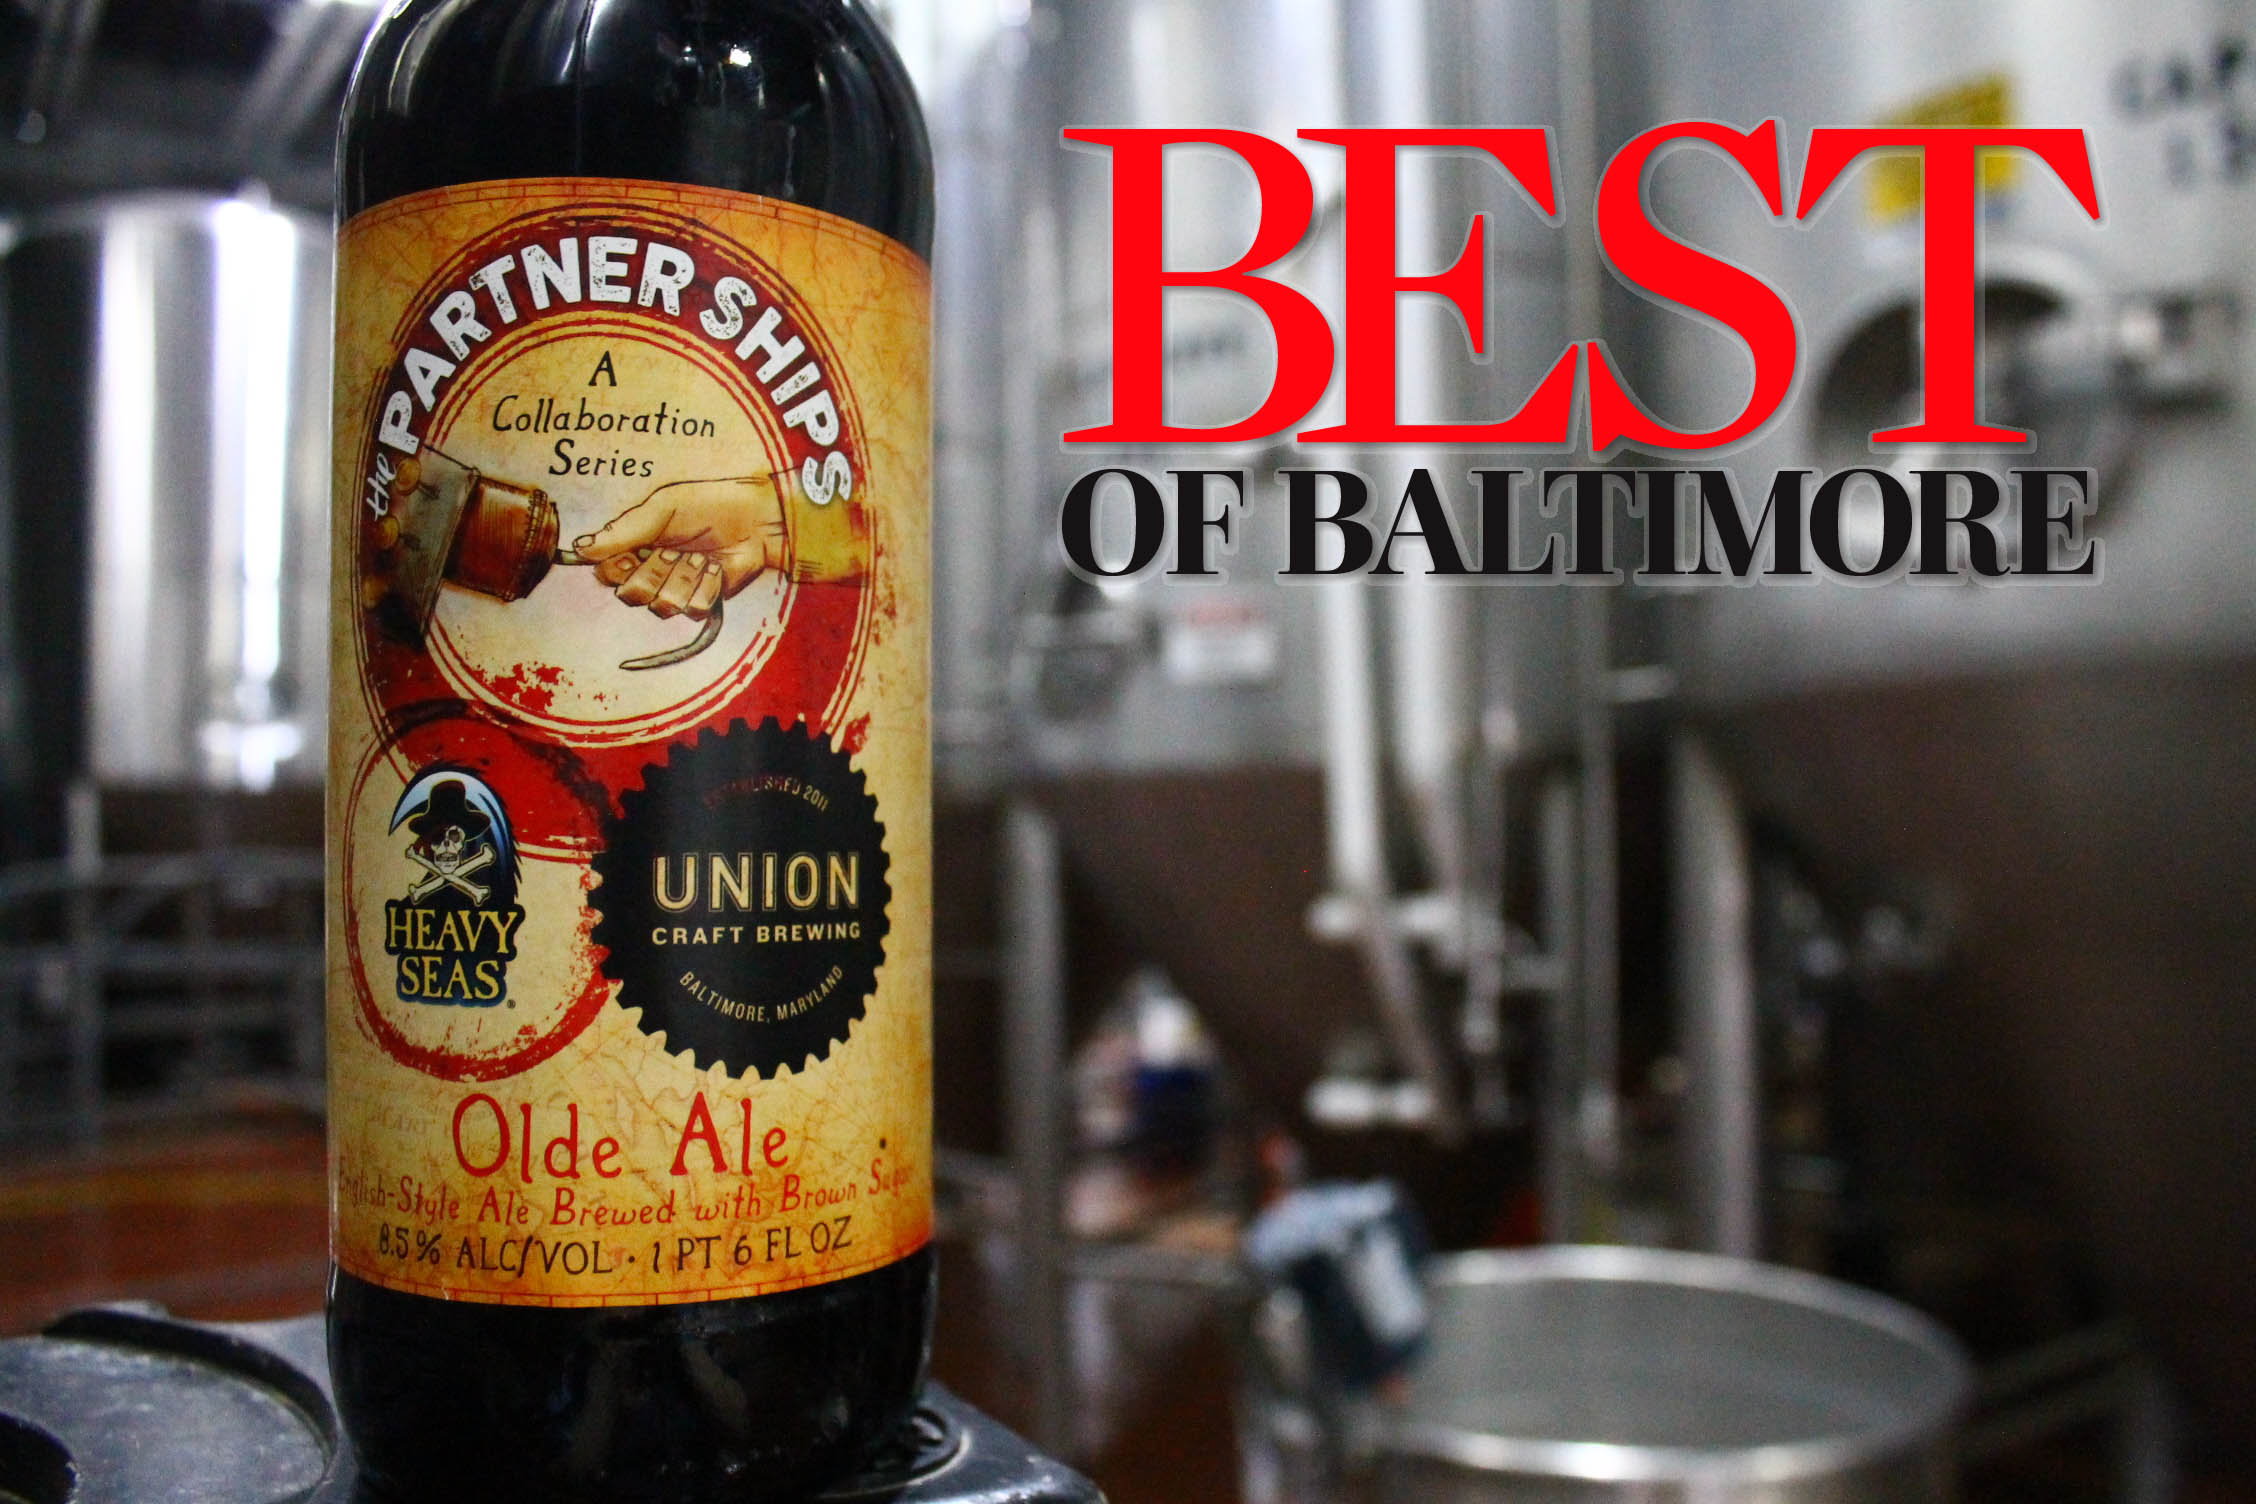 PartnerShips: Olde Ale - Heavy Seas & Union Craft Brewing